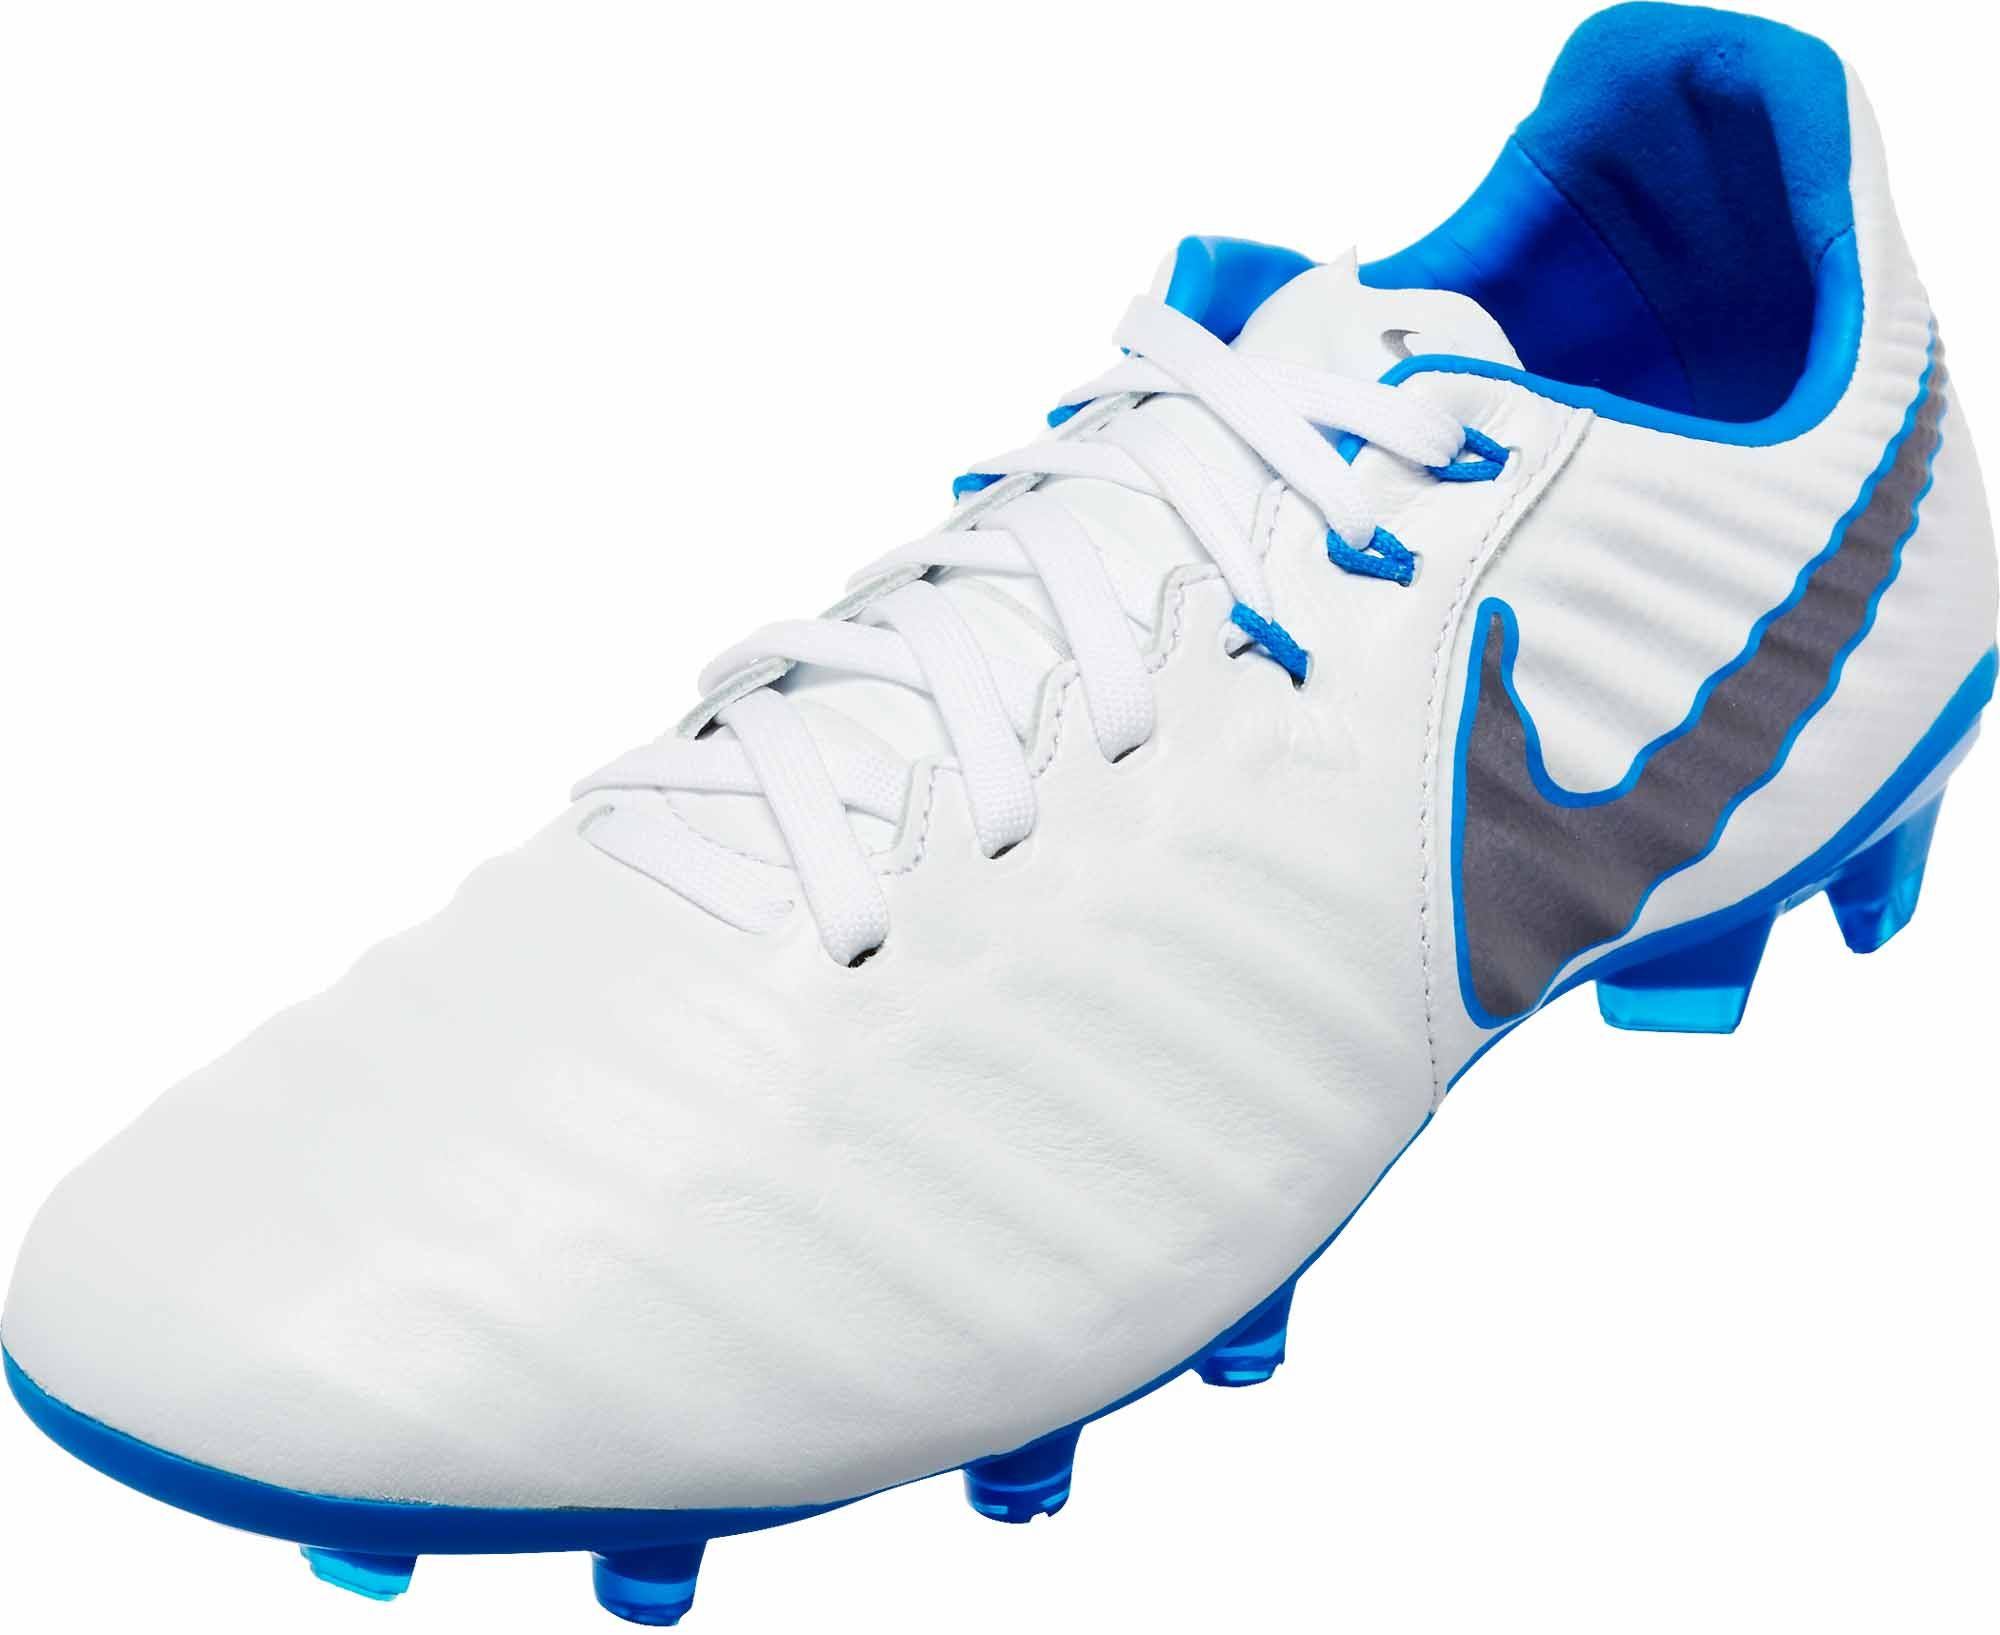 91688a63d23 World Cup pack Just Do It Kids Nike Tiempo Legend VII Elite shoes. Hot at  SoccerPro!